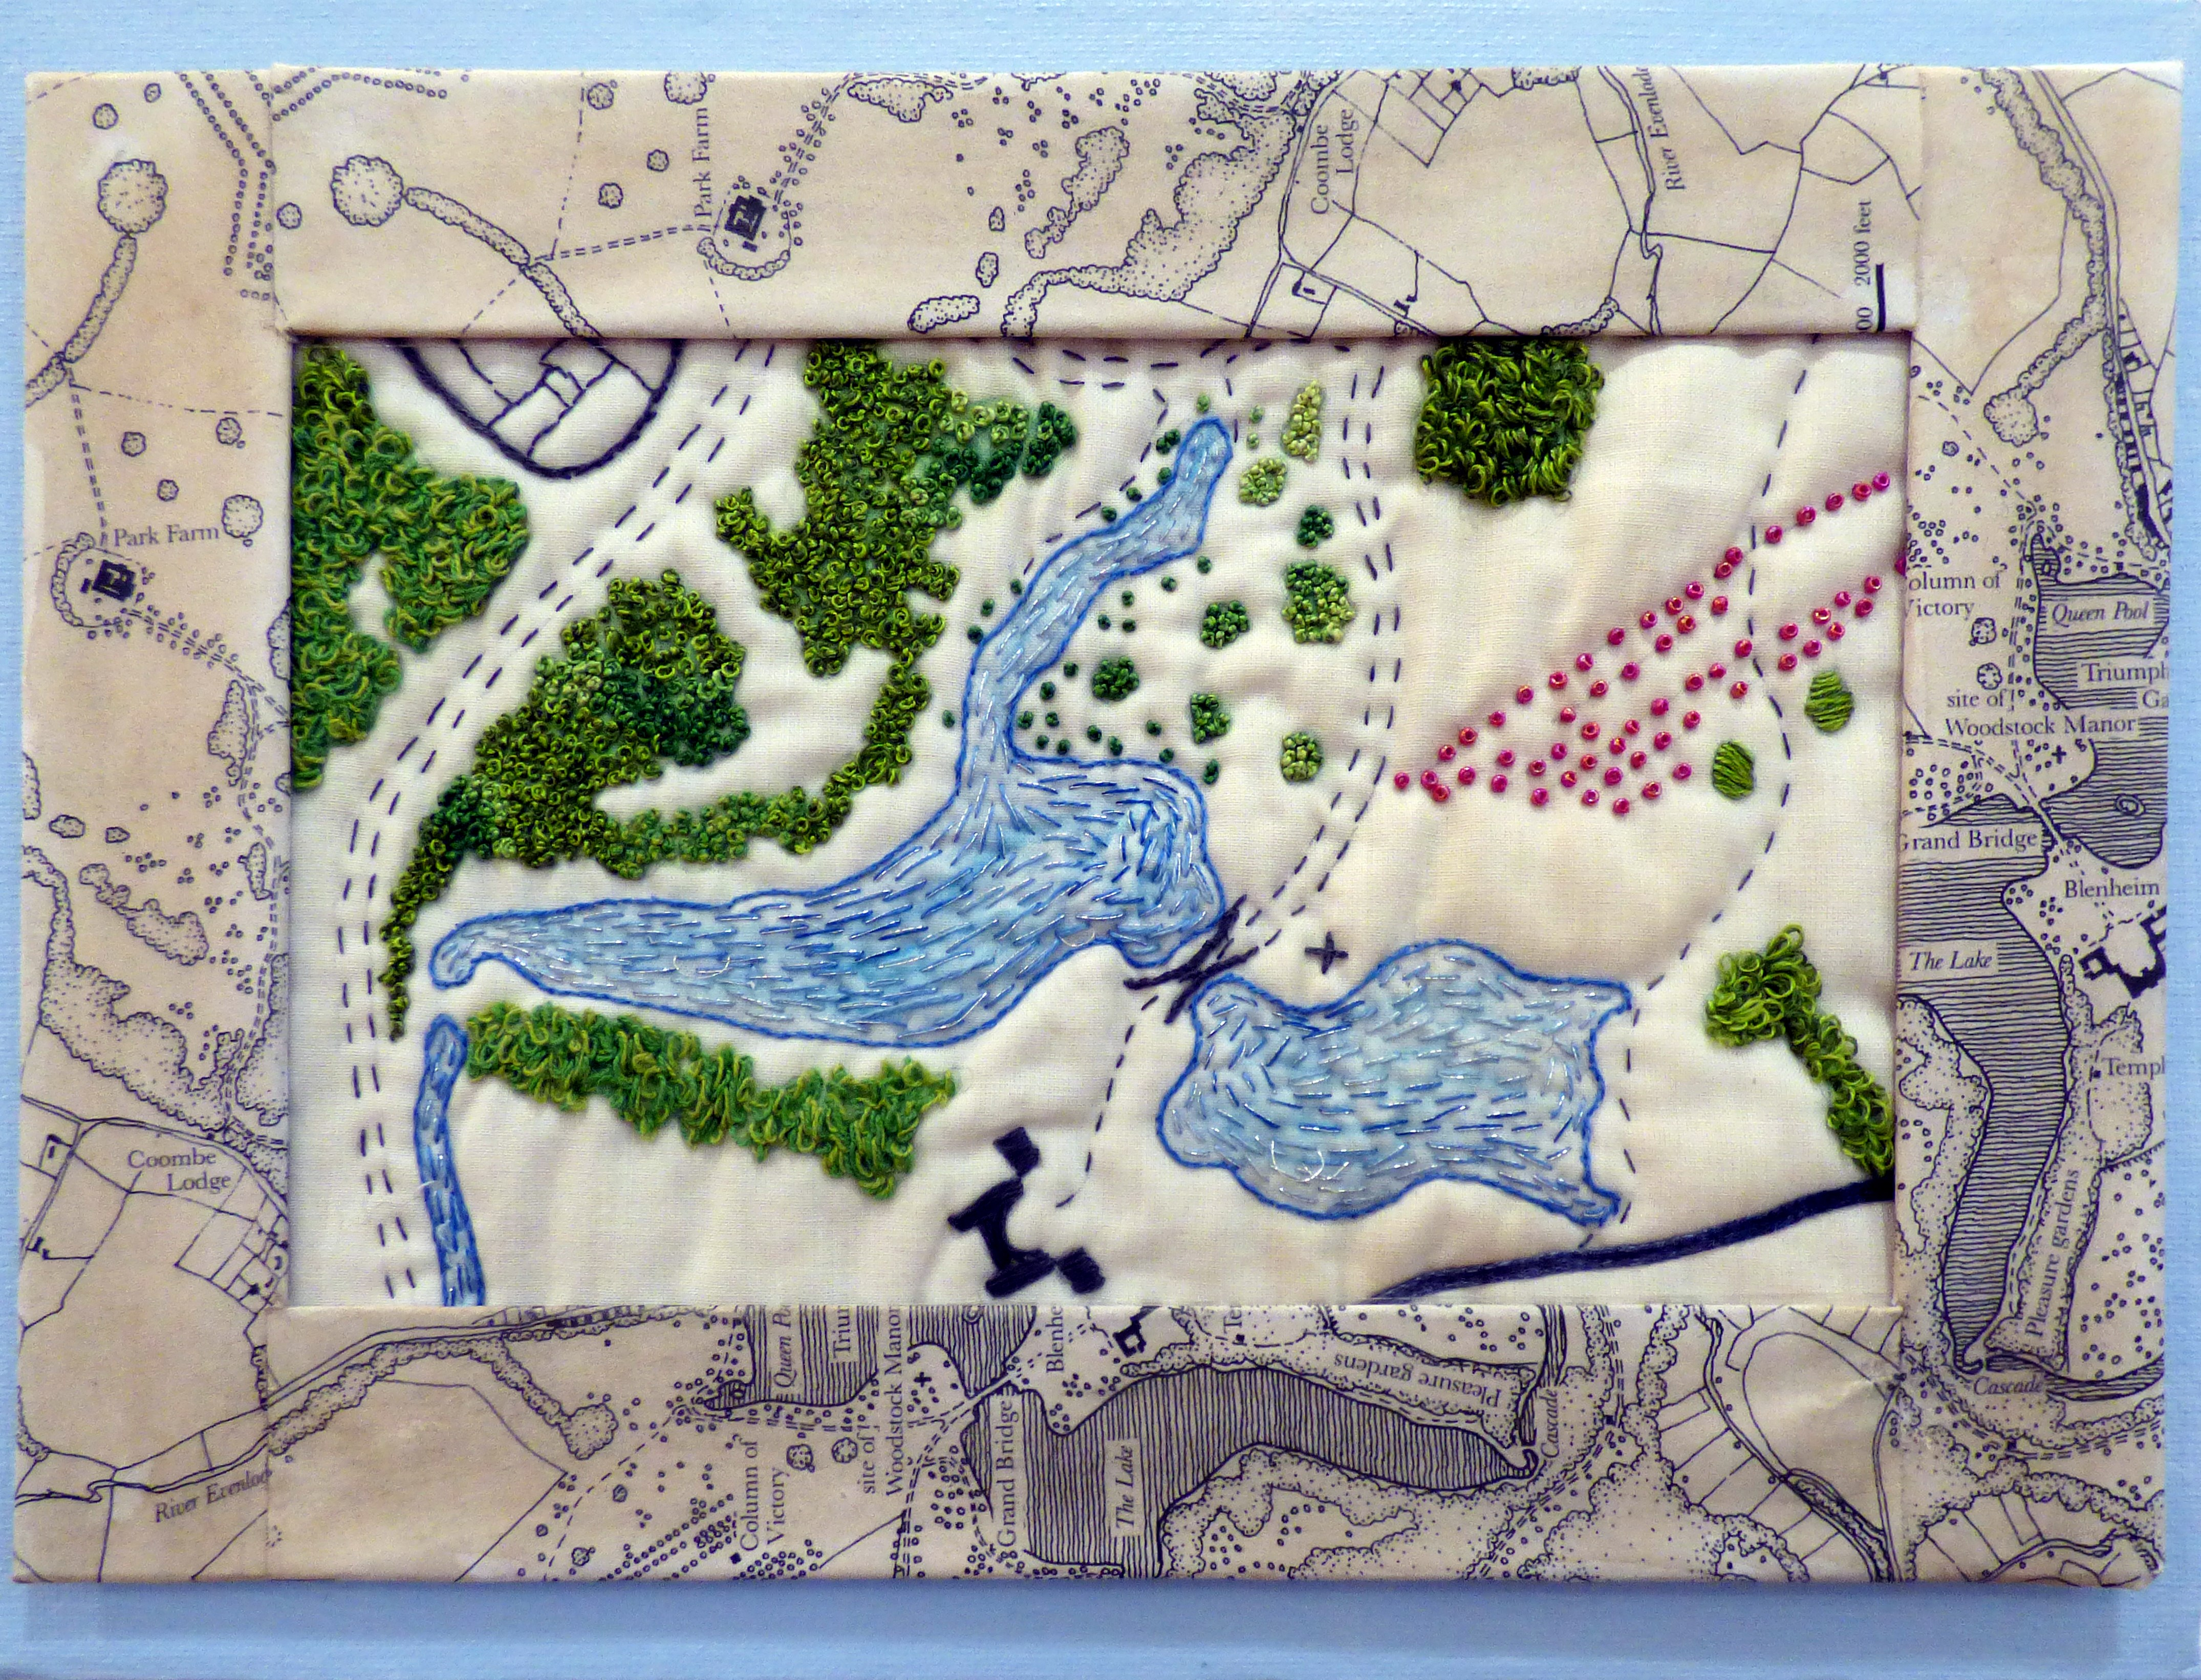 BLENHEIM PALACE by Christina Harris, Glossop & District EG, Capability Brown's plan of the park 1764 - 1773, hand embroidery